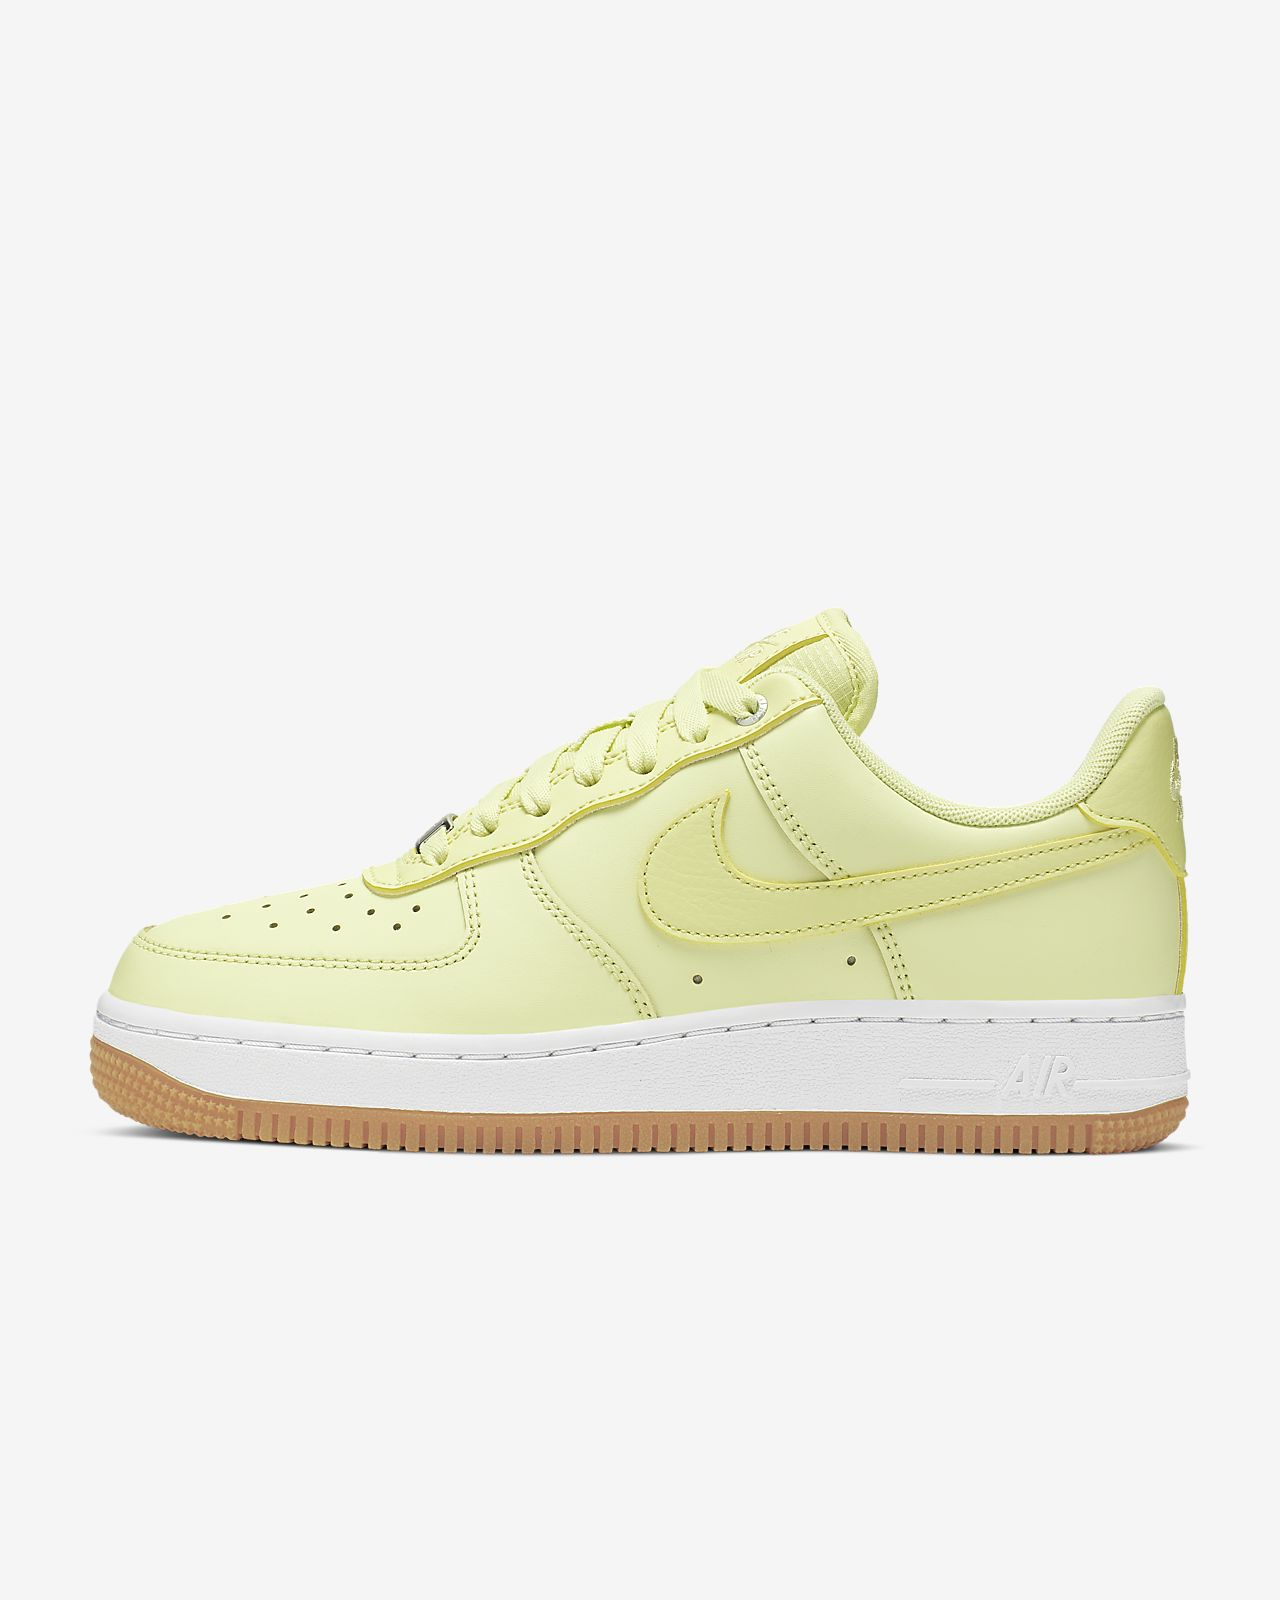 3de14c61b3 Nike Air Force 1 '07 Low Premium Women's Shoe